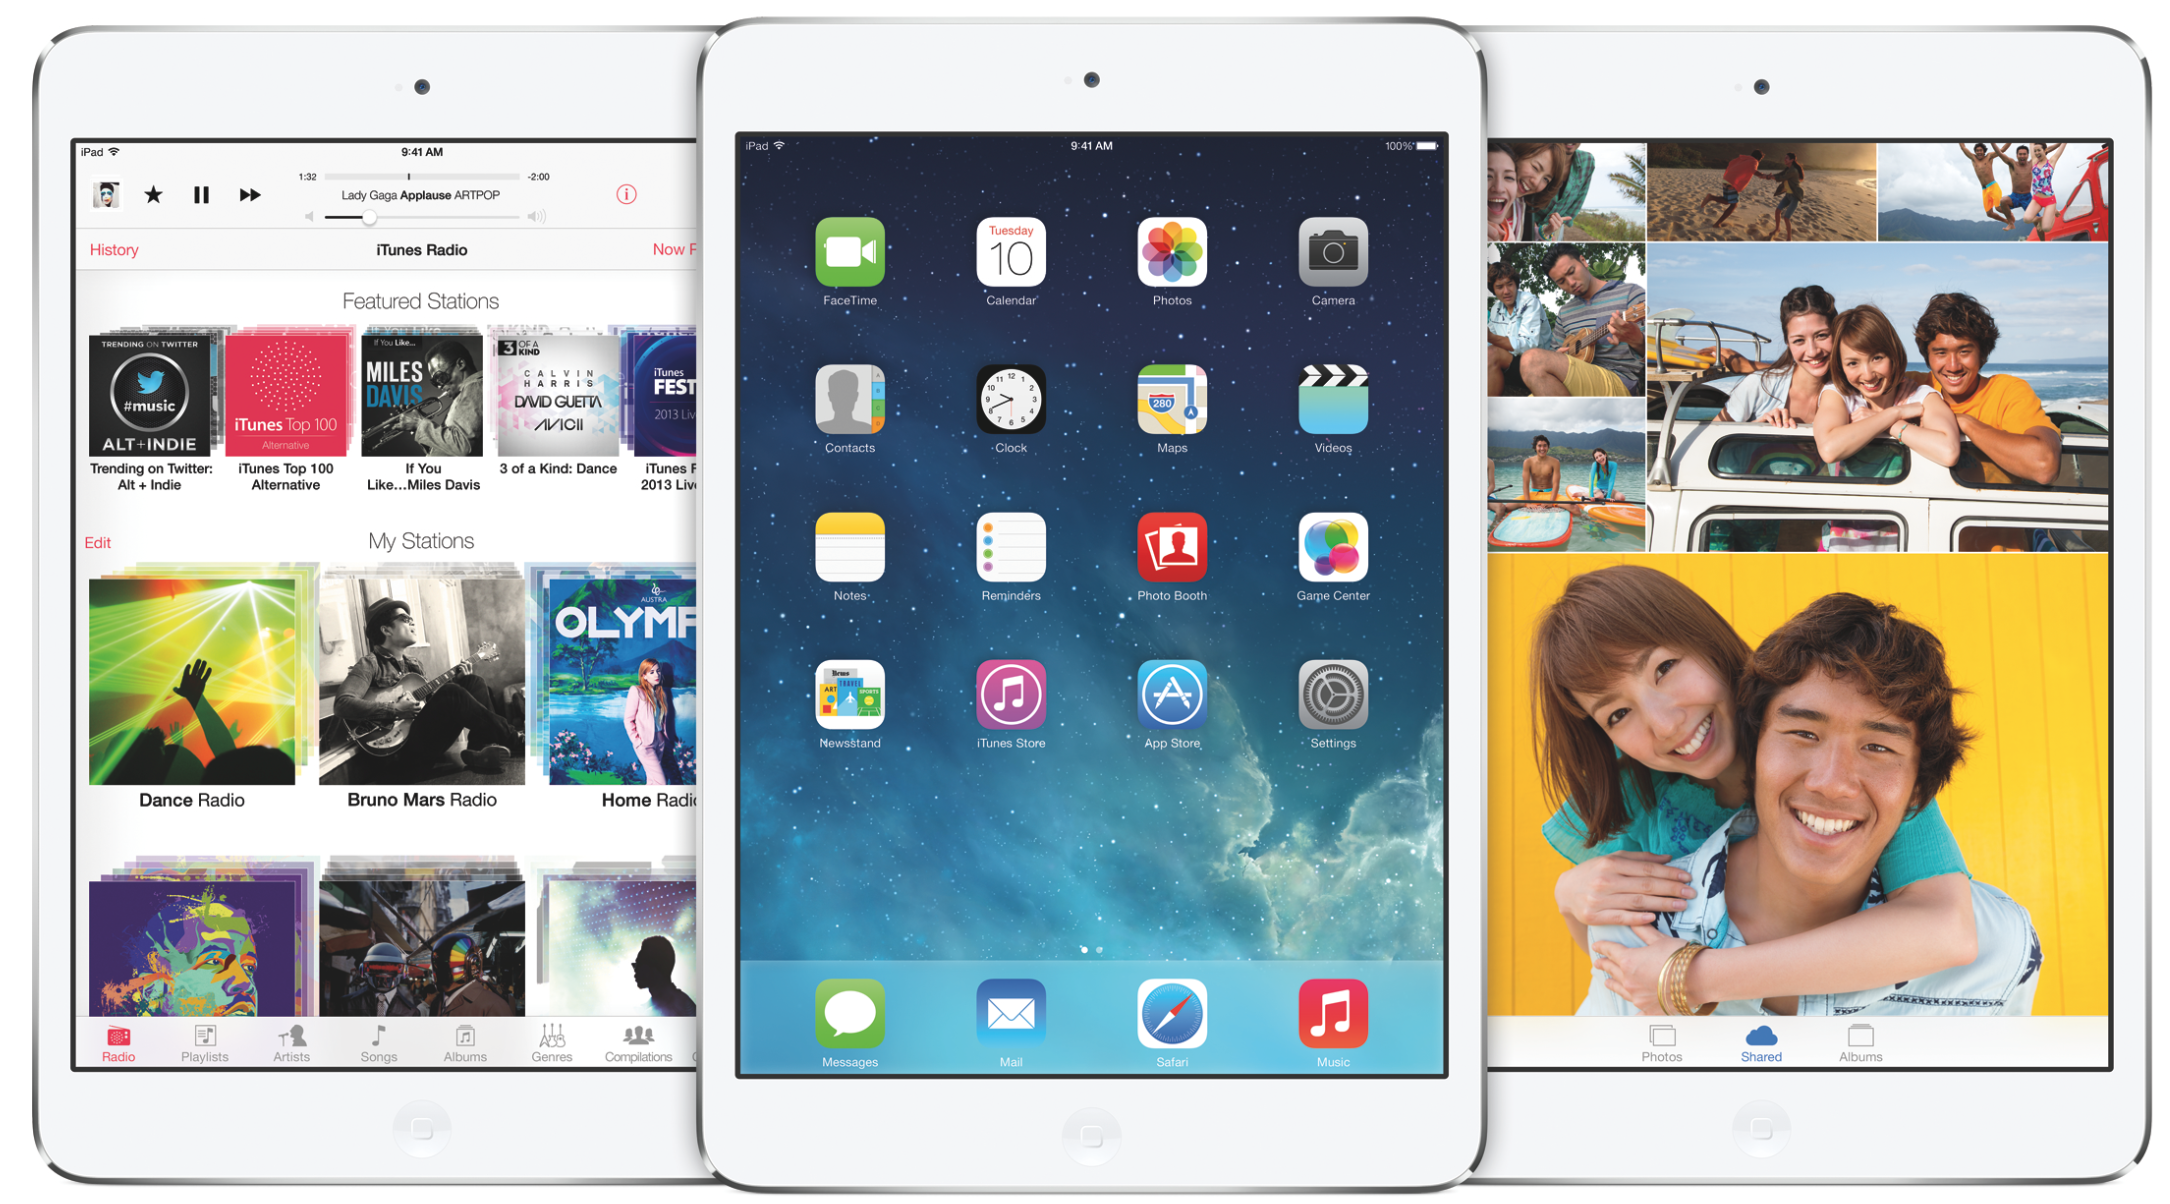 Roundup: Catch up on our iOS 7 walkthroughs, app reviews, and how-tos